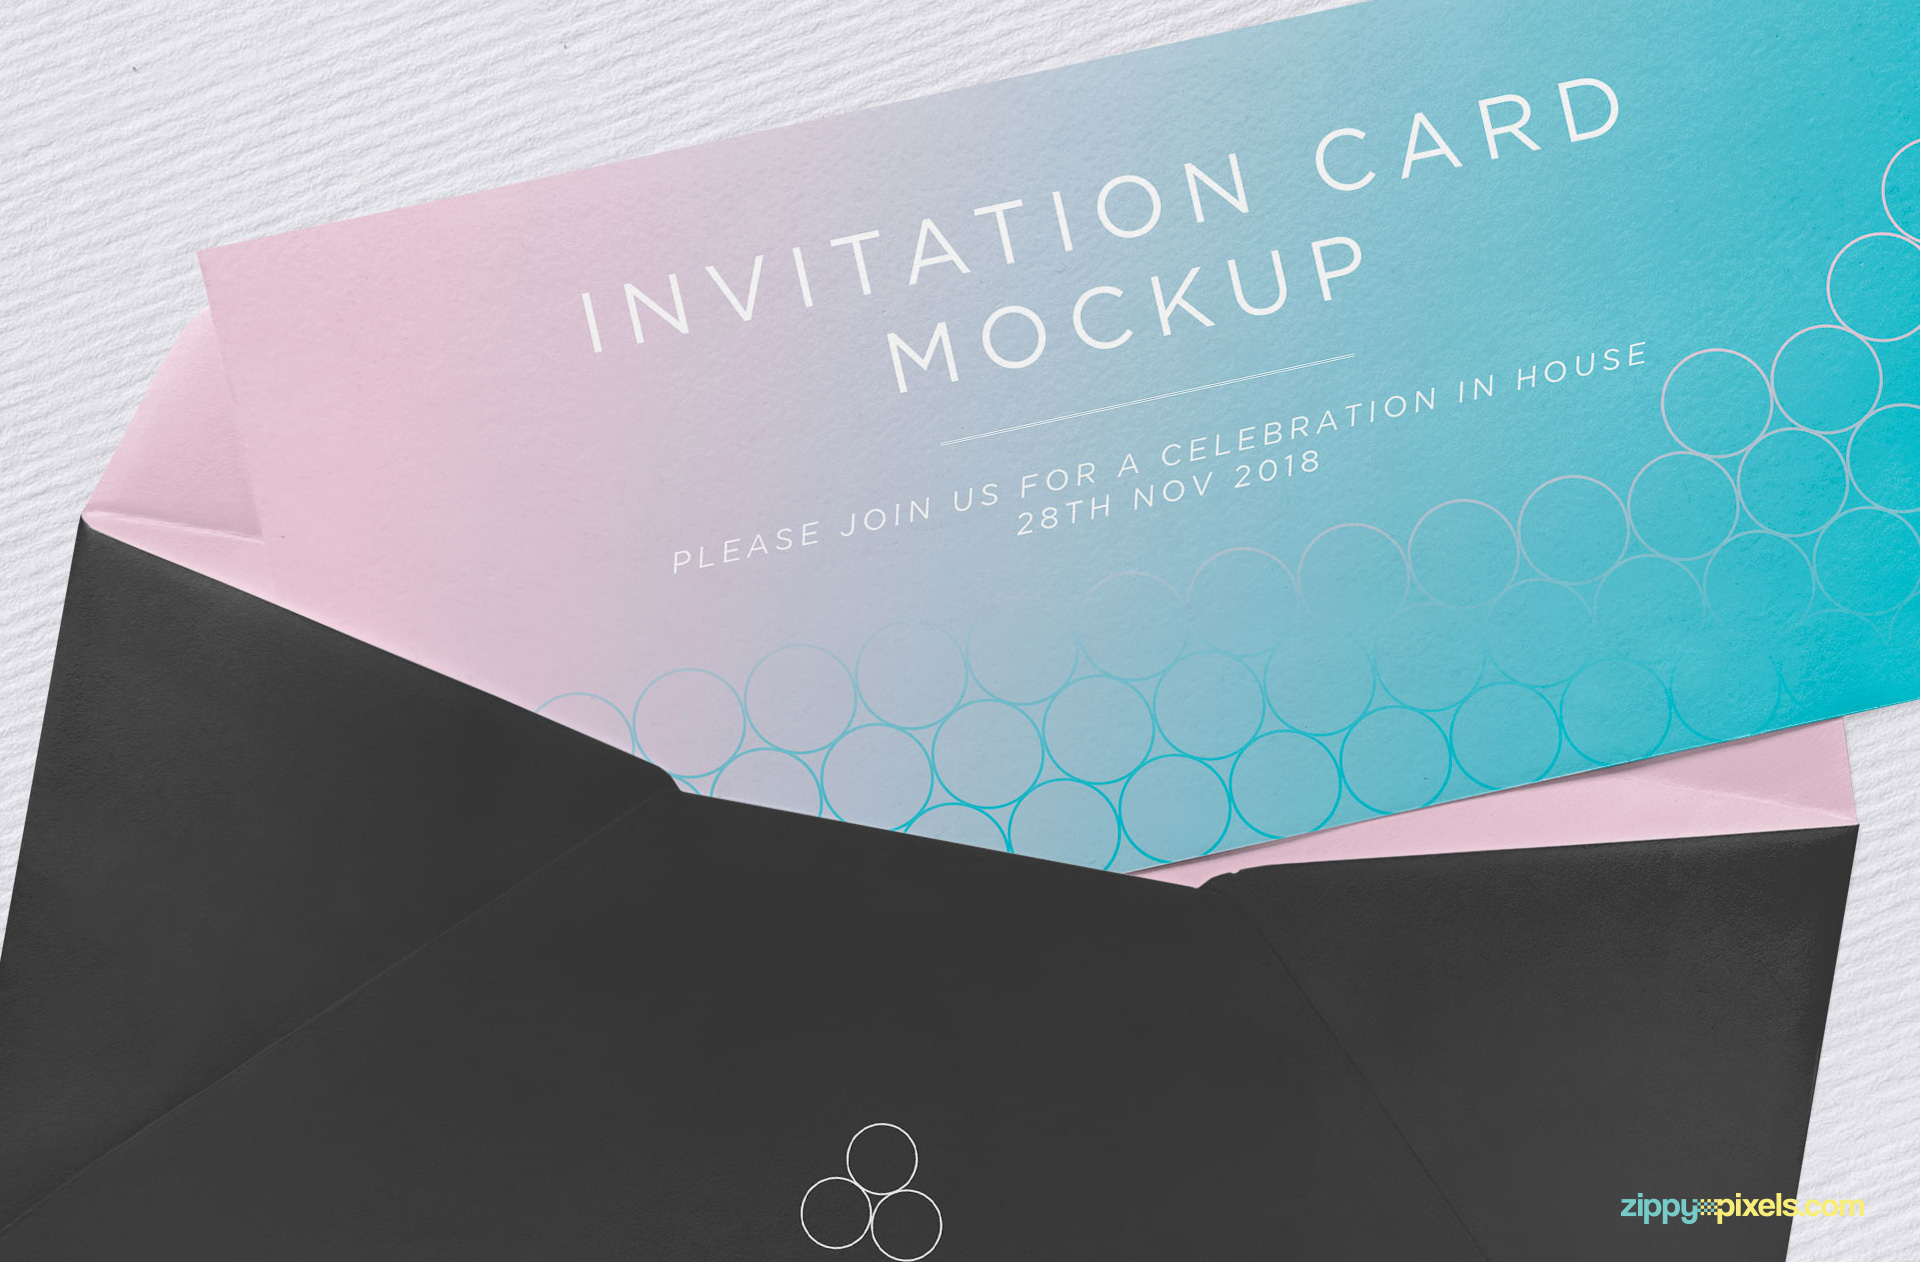 Try out the invitation mockup PSD.